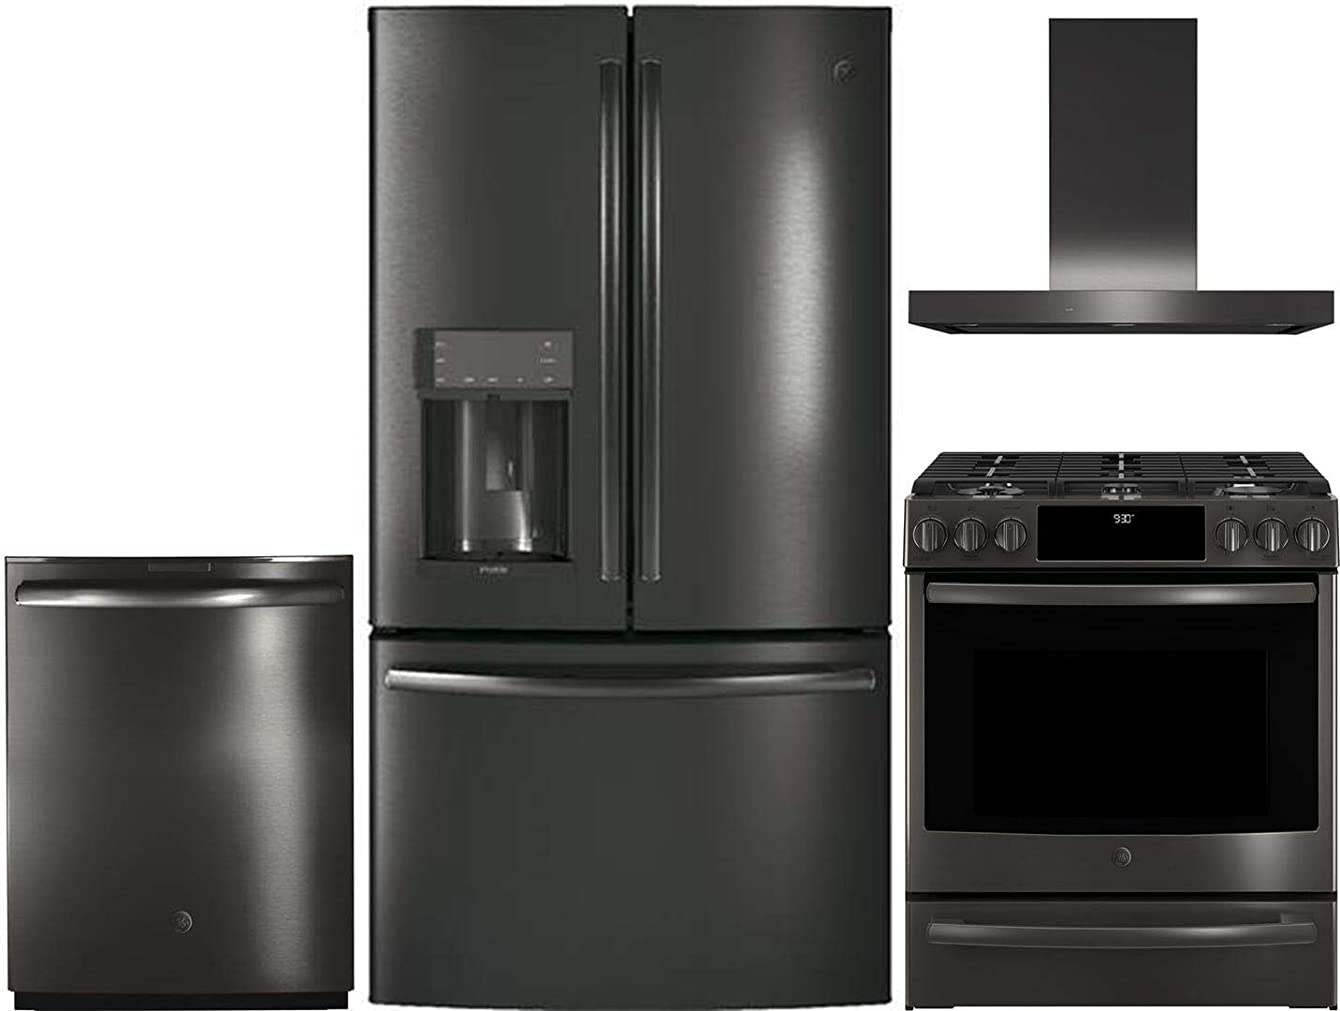 GE Profile 4 Piece Kitchen Appliance Package with PFE28KBLTS 36